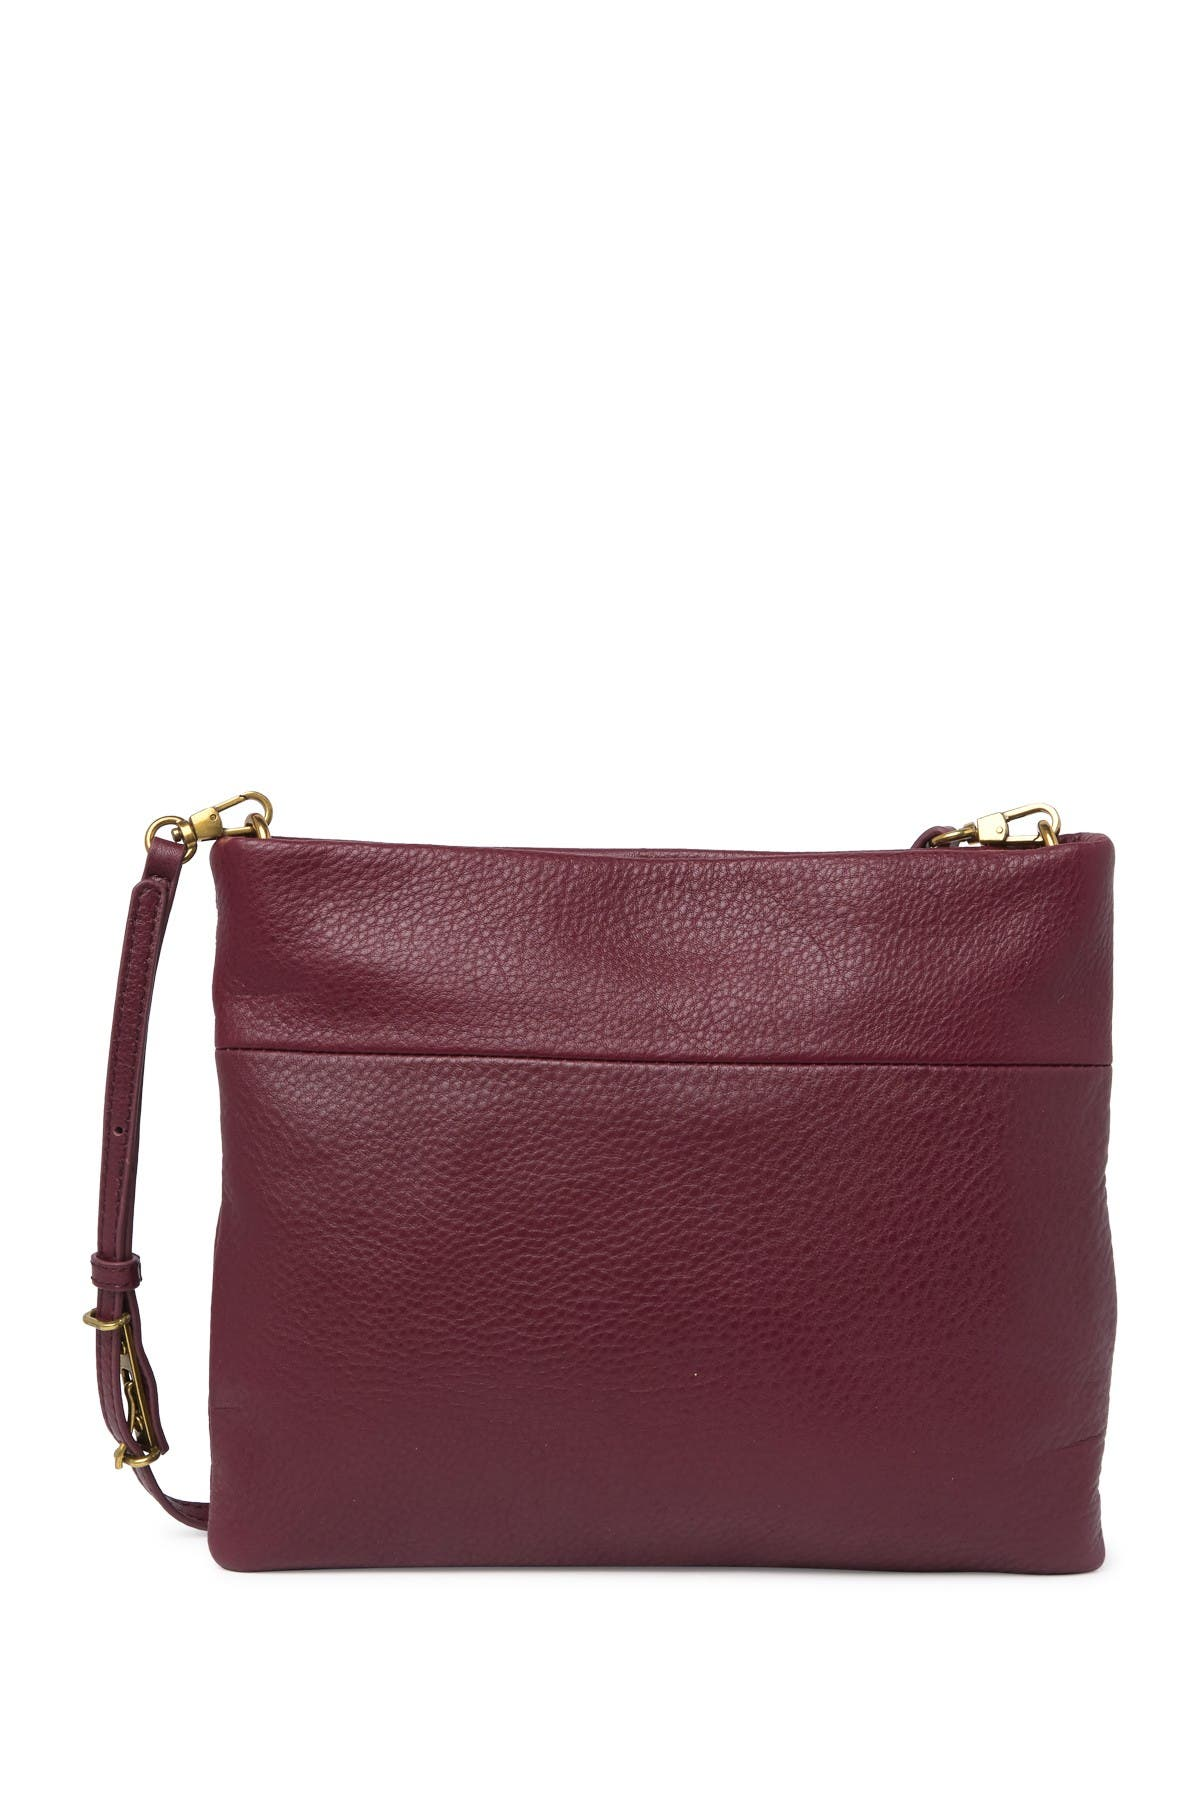 Image of THE SAK COLLECTIVE Tomboy Convertible Leather Clutch